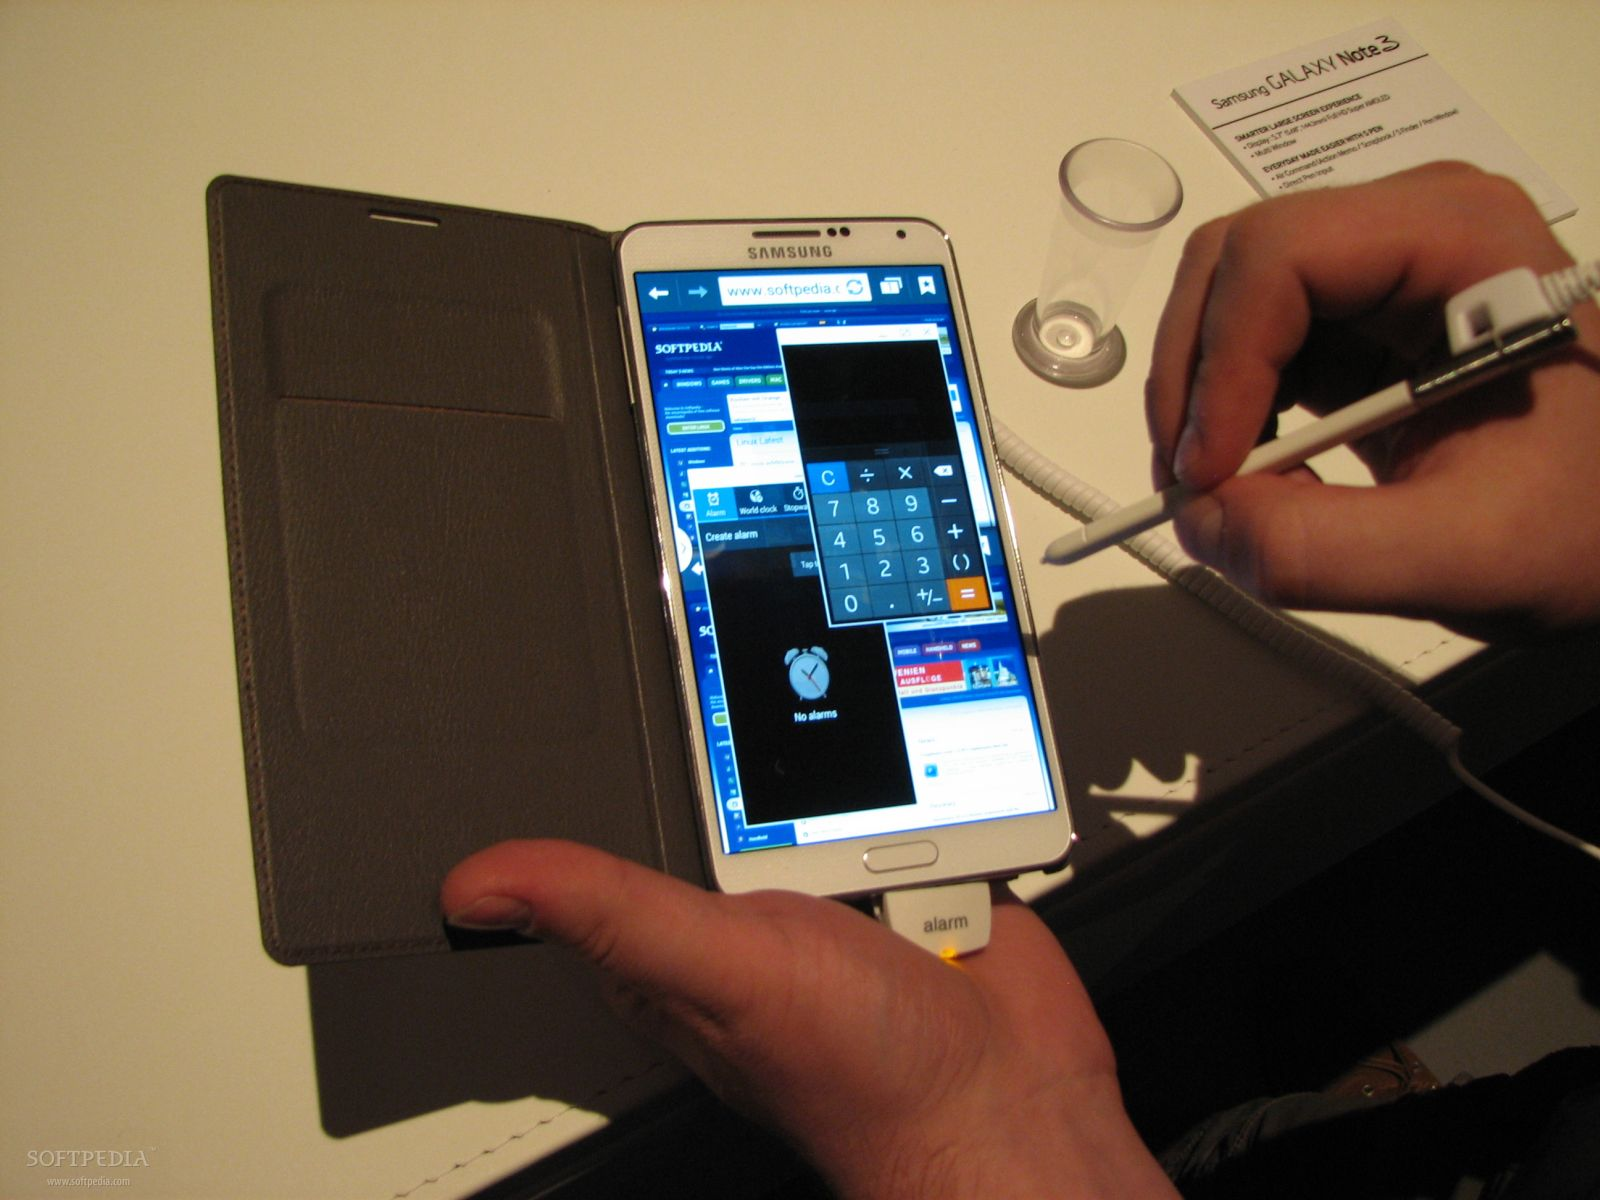 Samsung galaxy note 3 lite arriving in late march report softpedia - Samsung galaxy note 3 lite vs note 3 ...